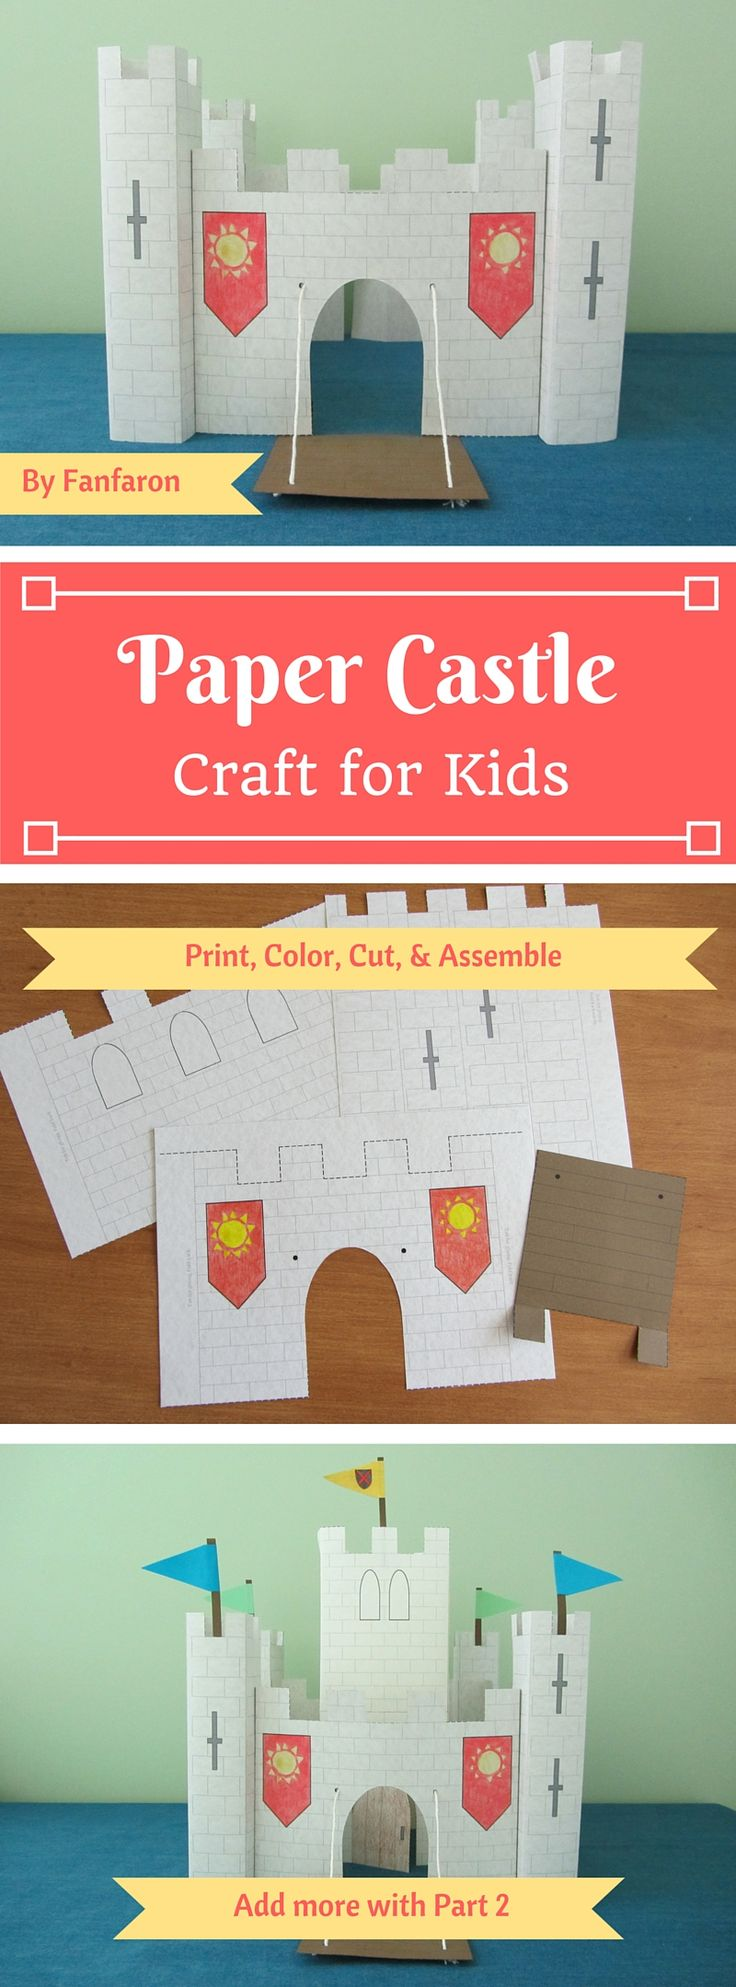 Make a medieval castle out of paper! Simply purchase the template, print it from your home computer, and start crafting. Watch the video instructions on YouTube to see how it's done! www.youtube.com/c/fanfaronbylaura    If you're feeling ambitious, purchase part 2 to add a central keep and flags to your project.